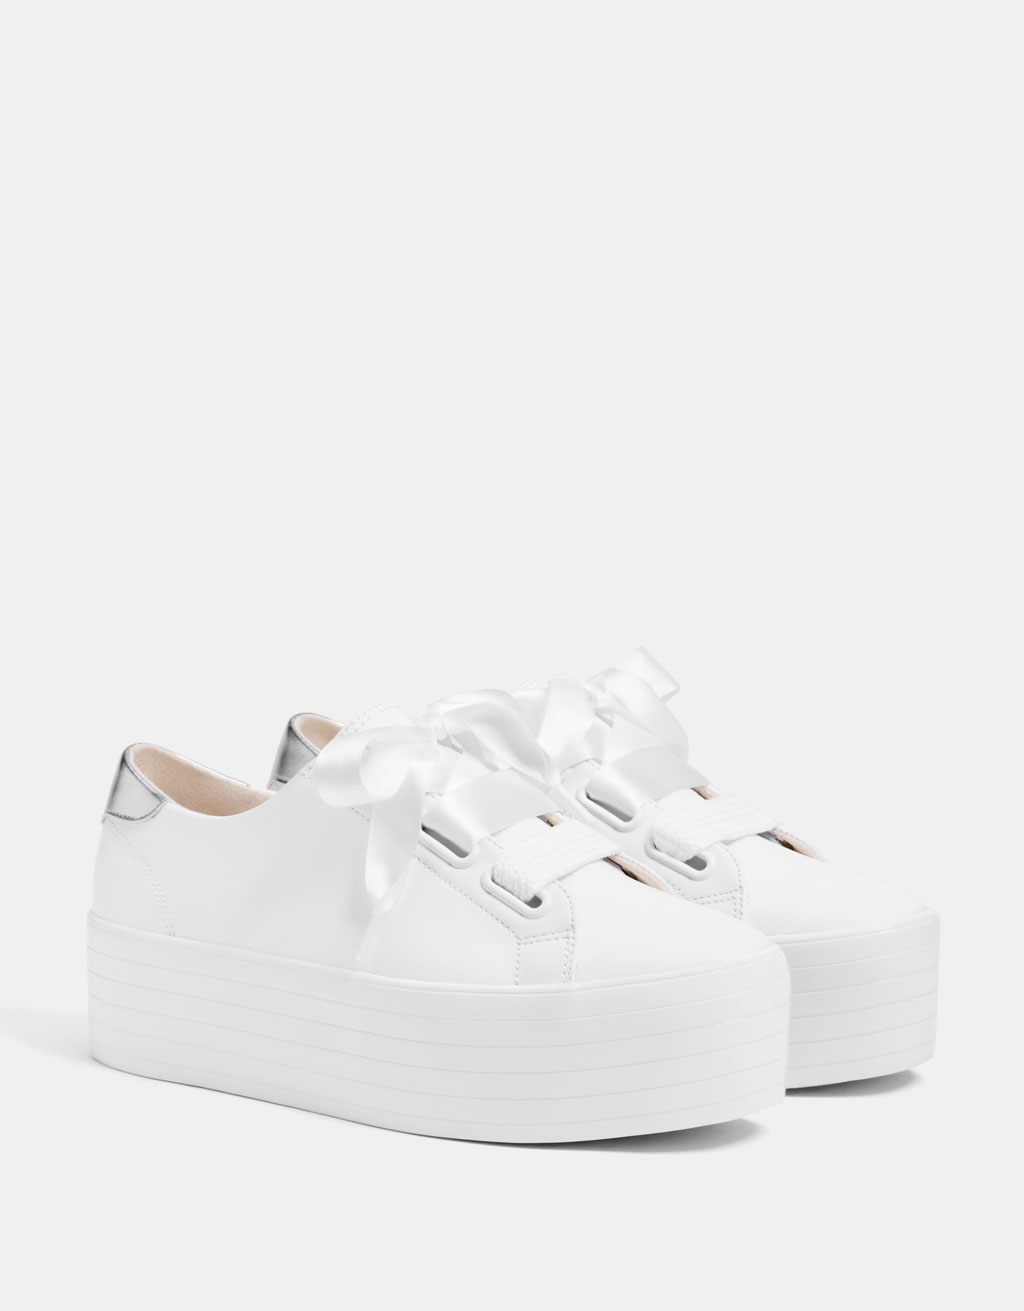 Platform sneakers with XL laces